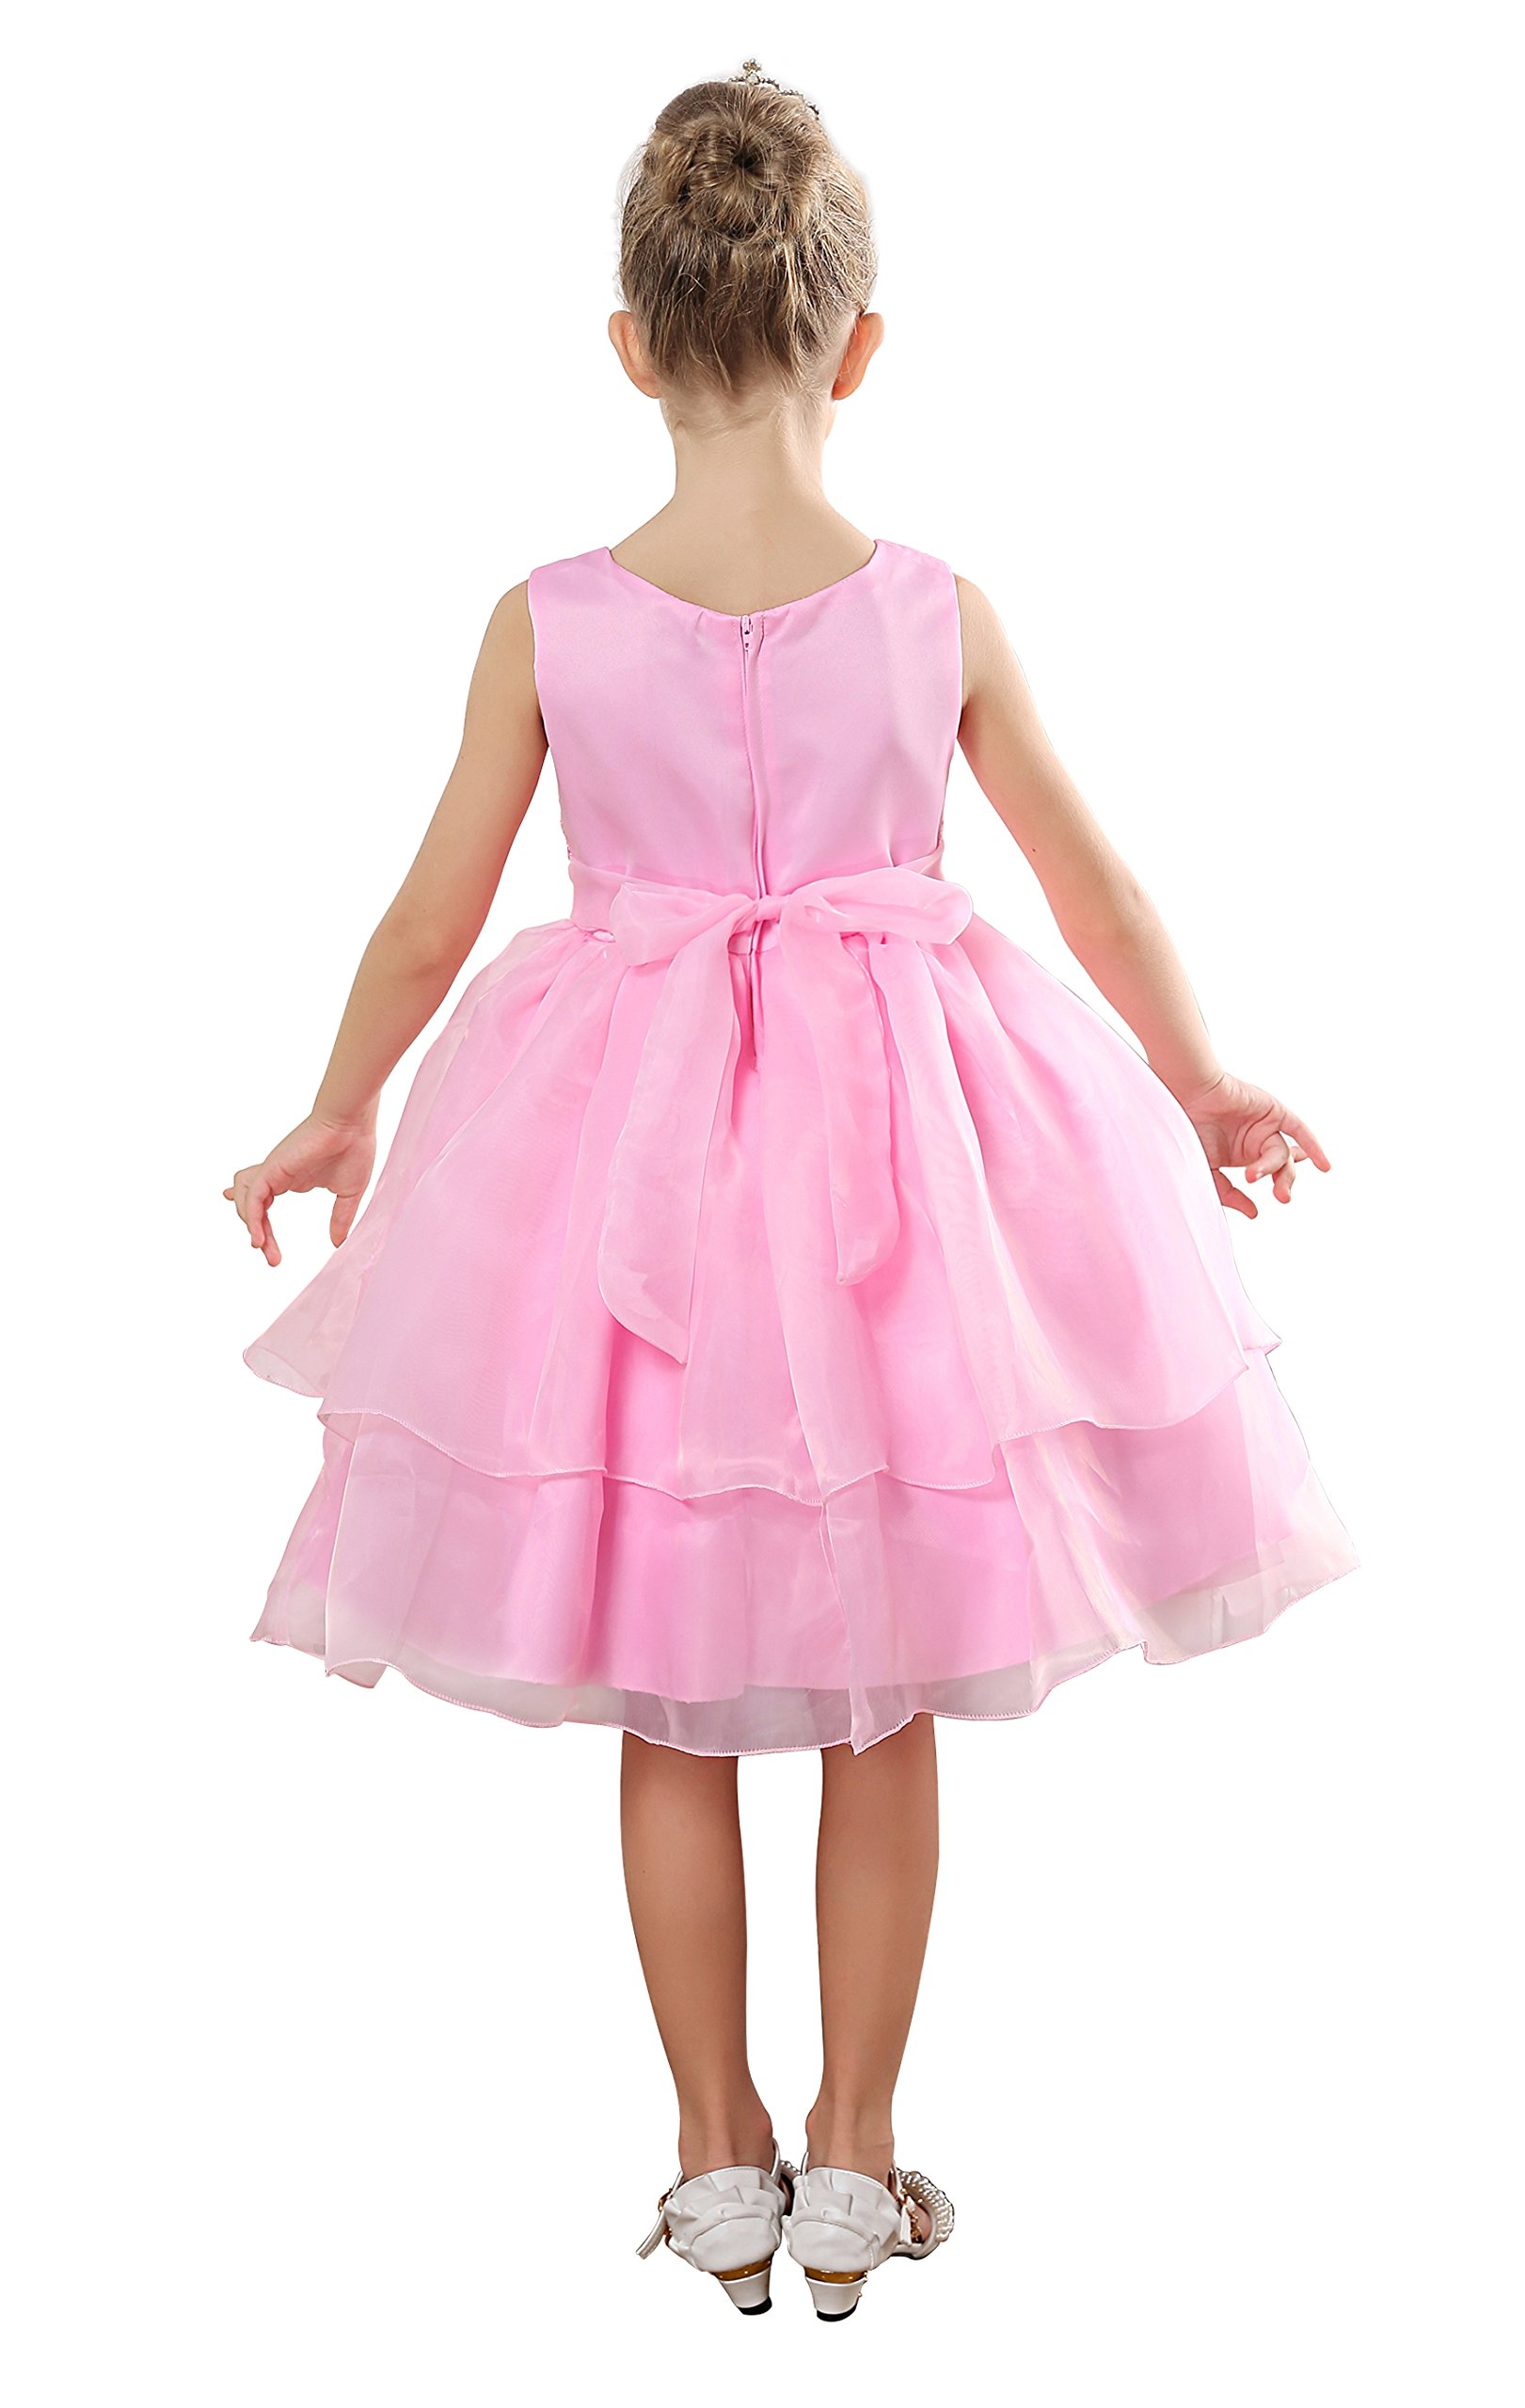 Fiream Flower Girls Dresses Tulle Sleeveless Princess Pageant Wedding Party Dresses(pink,3T/3-4YRS) by Fiream (Image #2)